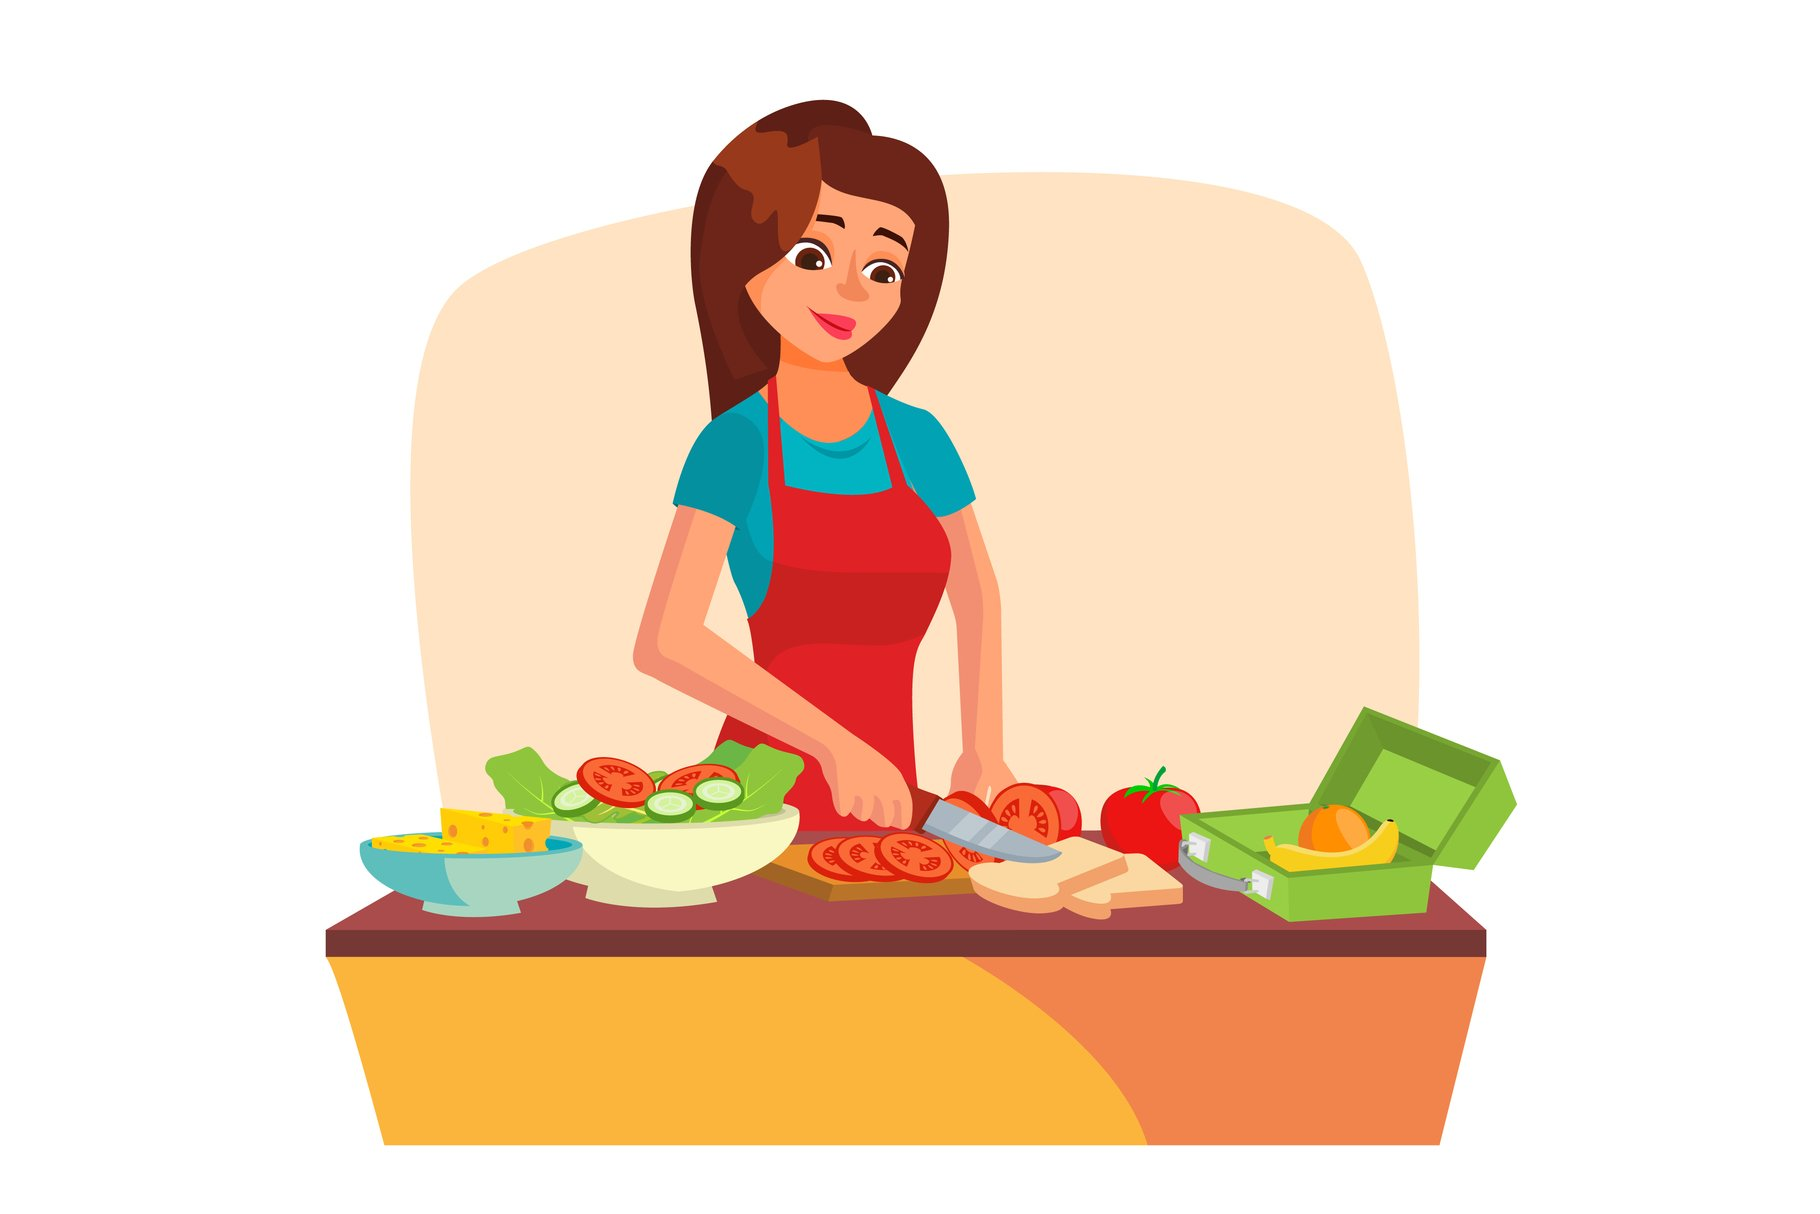 Lunch Box Vector. Making A Healthy School Lunch For Kids. example image 1